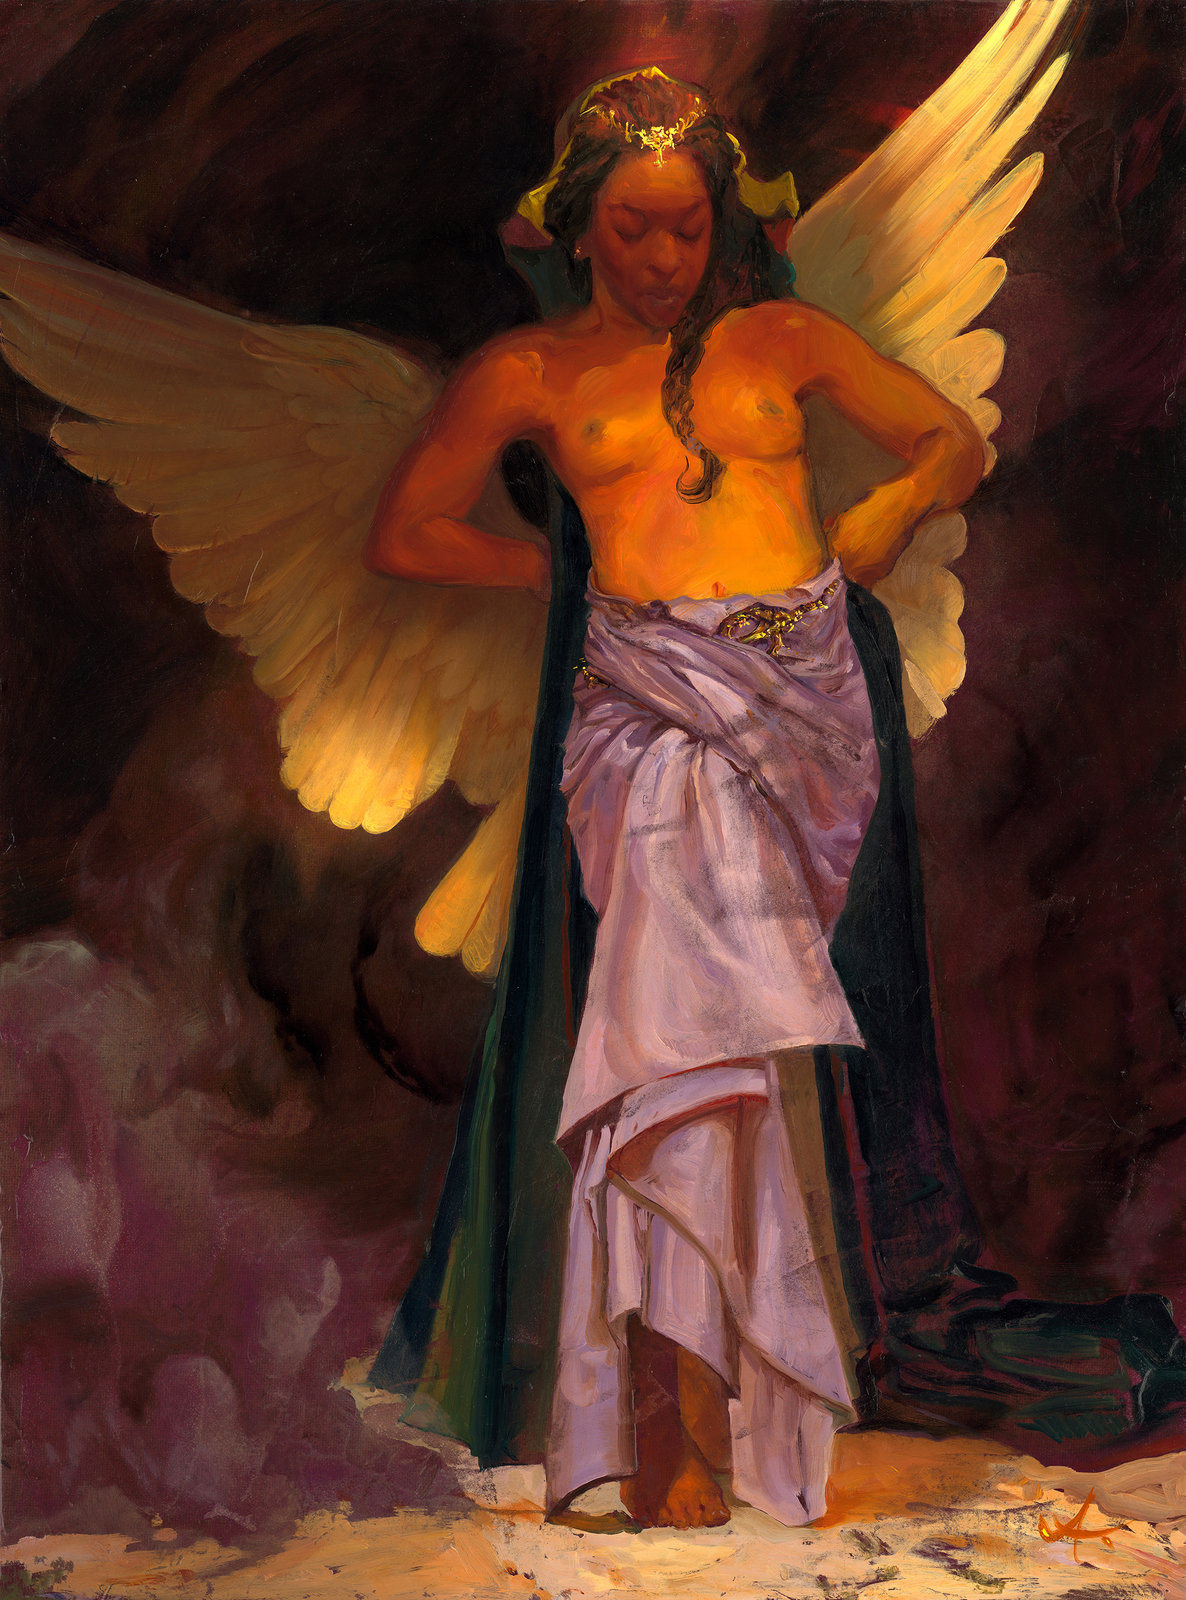 Black Angel - 18x24 Oil Painting